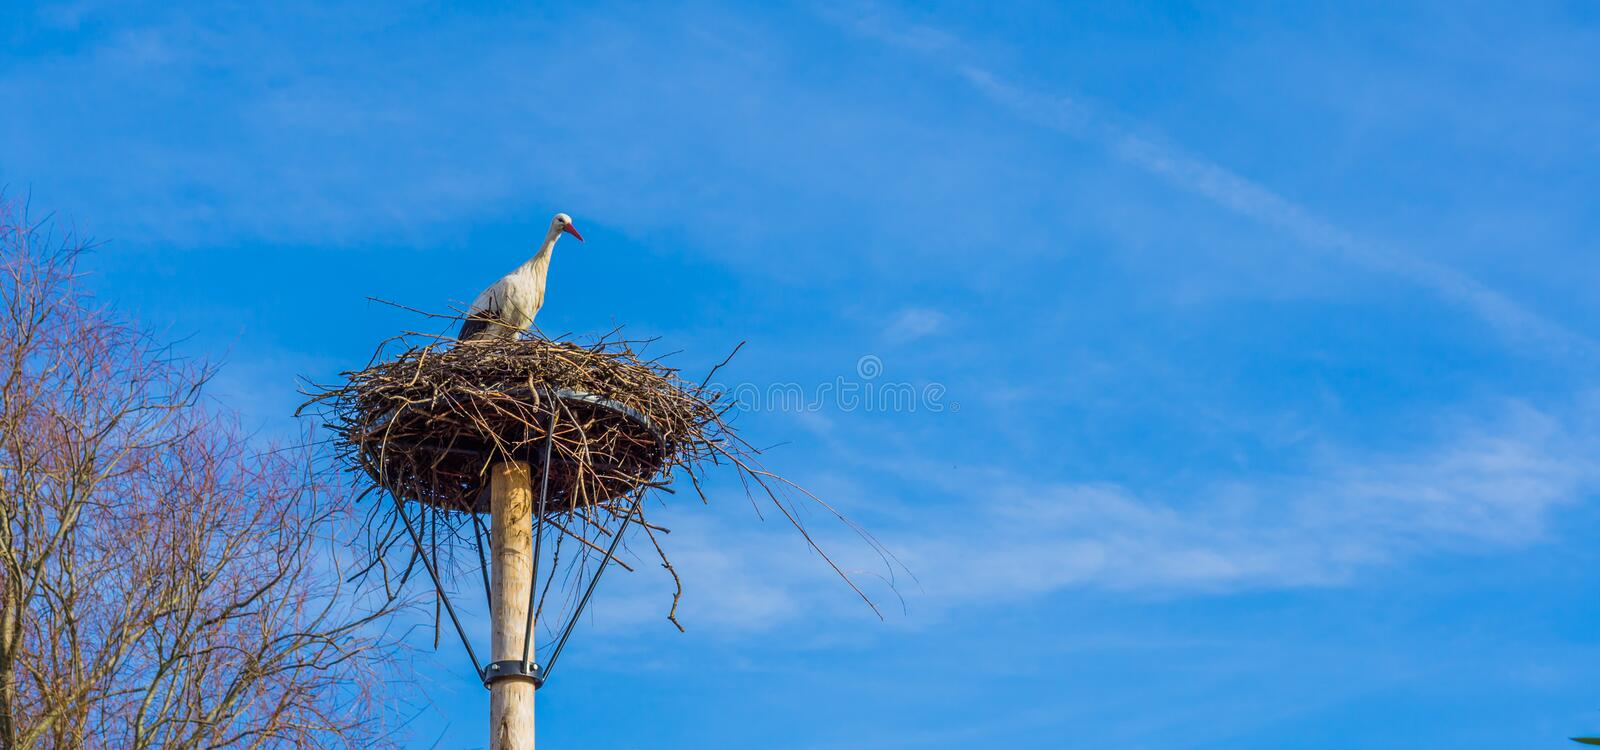 Big birds nest with a stork in it, clean and deep blue sky in the background, migrated bird from Africa stock photography